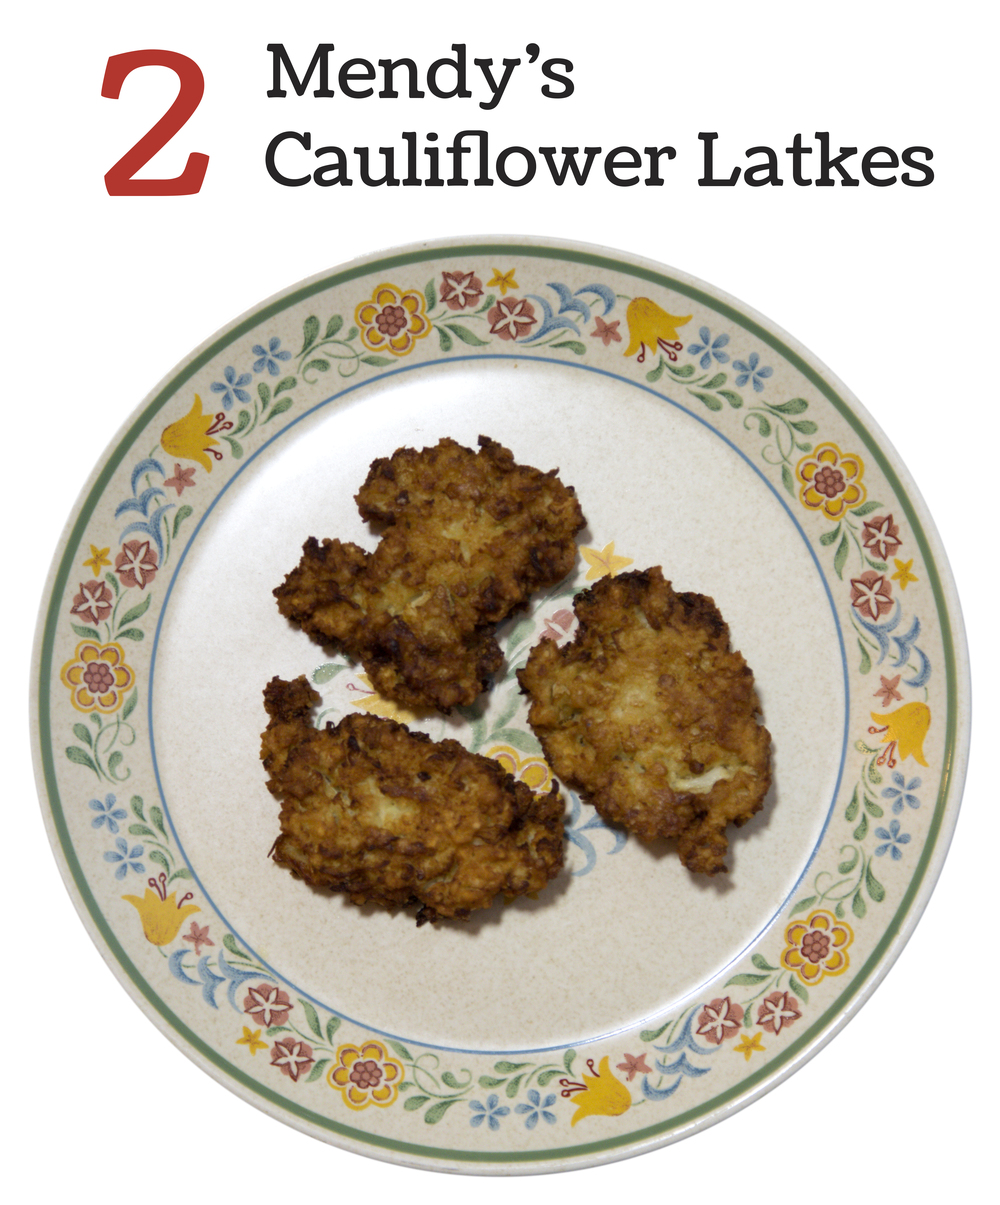 2 Mendy's Cauliflower Latkes.jpg